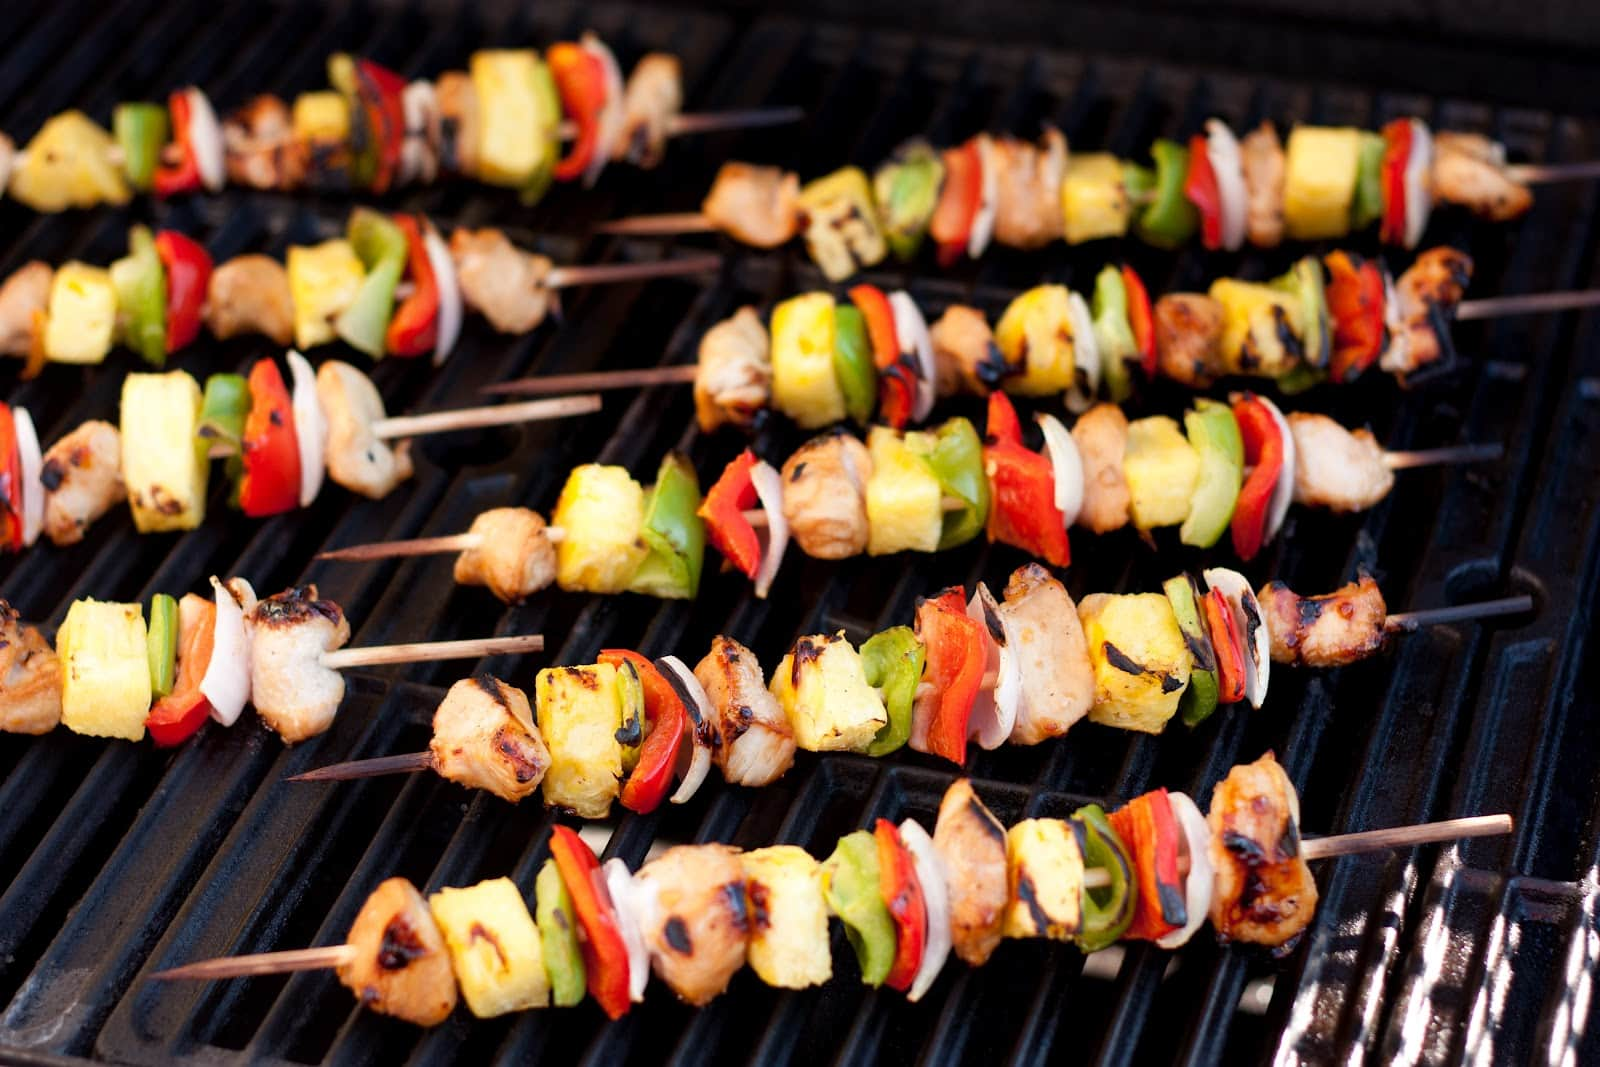 How long do i grill chicken skewers - Grilled Chicken Teriyaki Kebobs